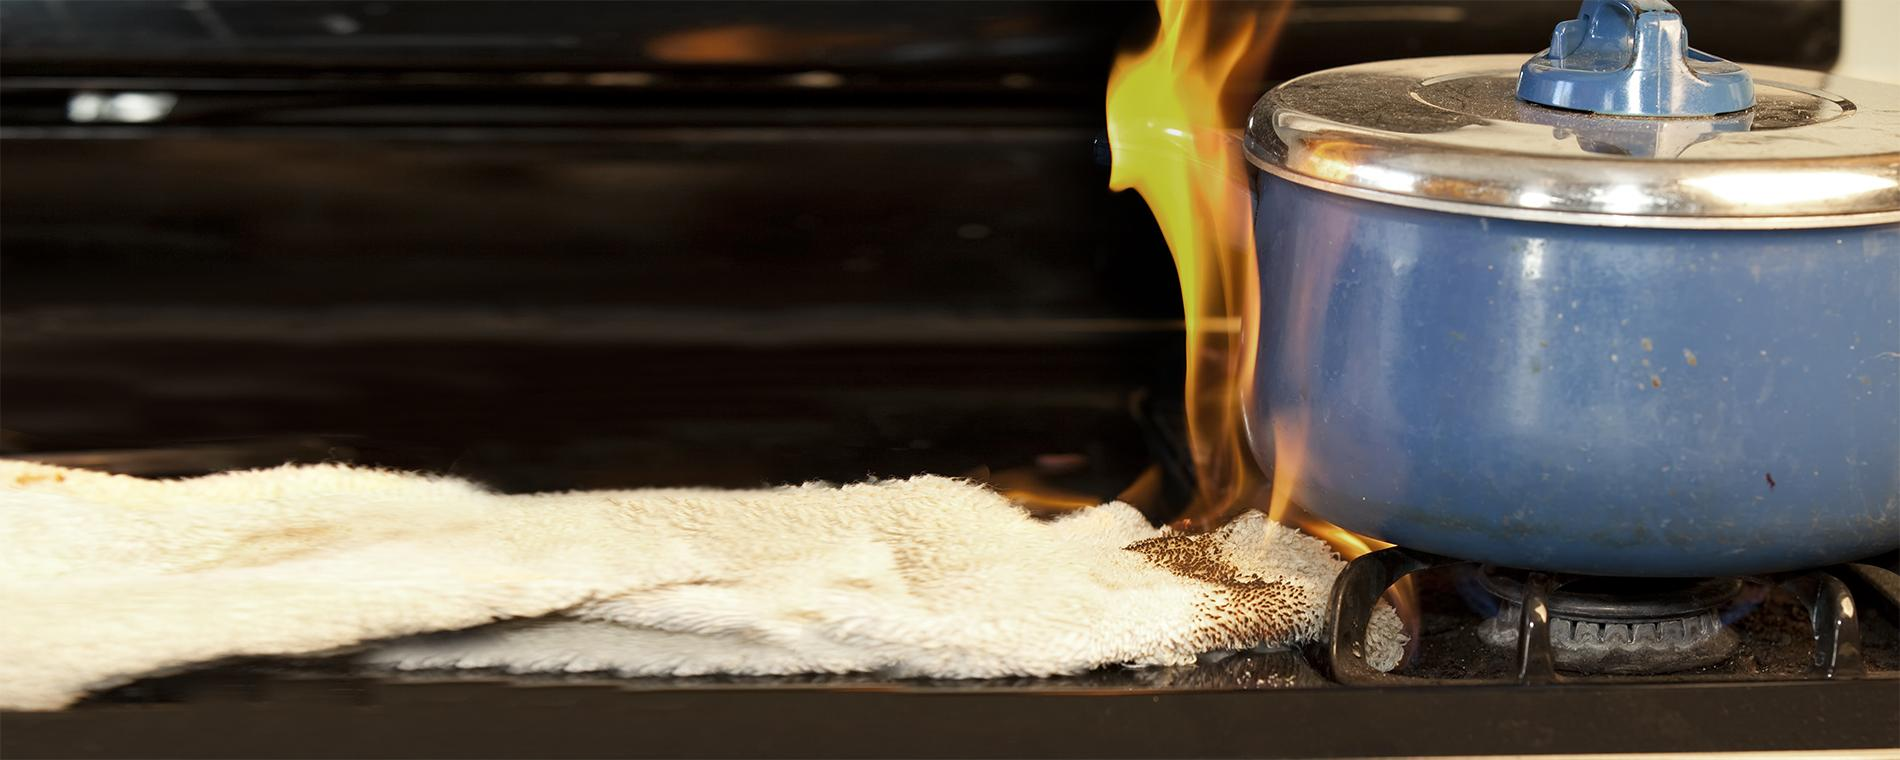 Keep flammable items away from stove tops